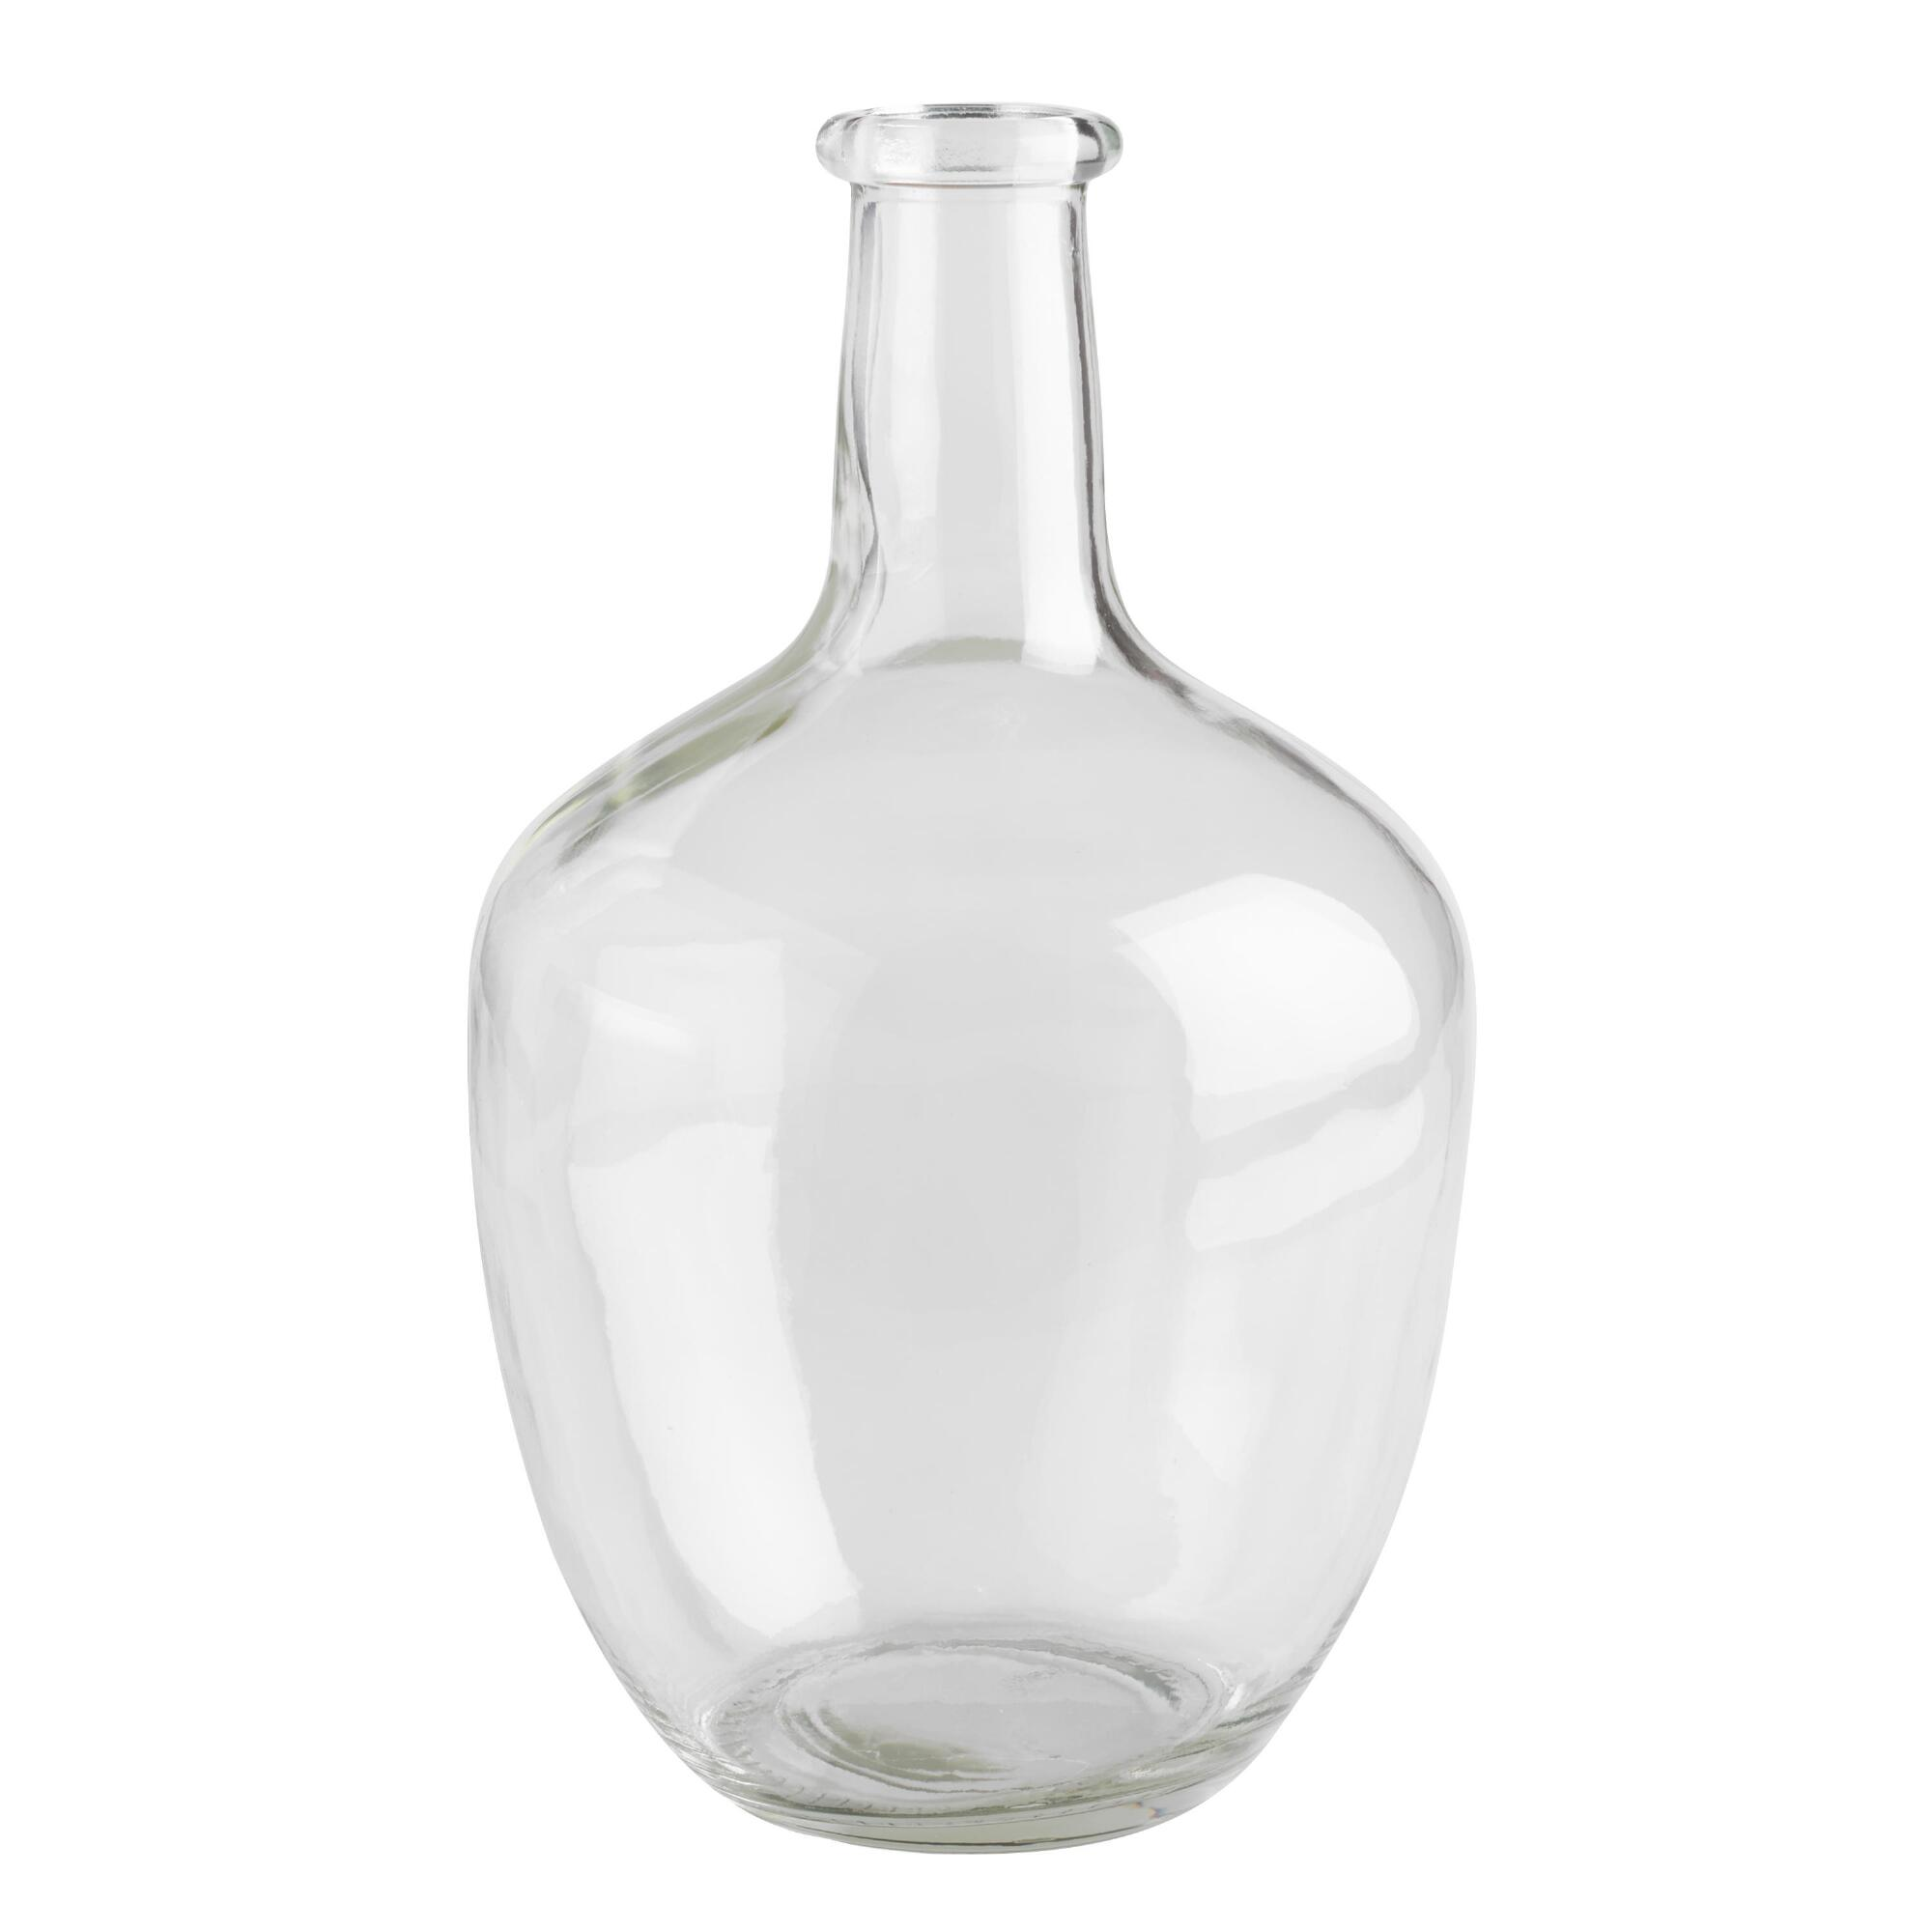 Vases glass vases vase fillers world market long neck clear glass vase reviewsmspy